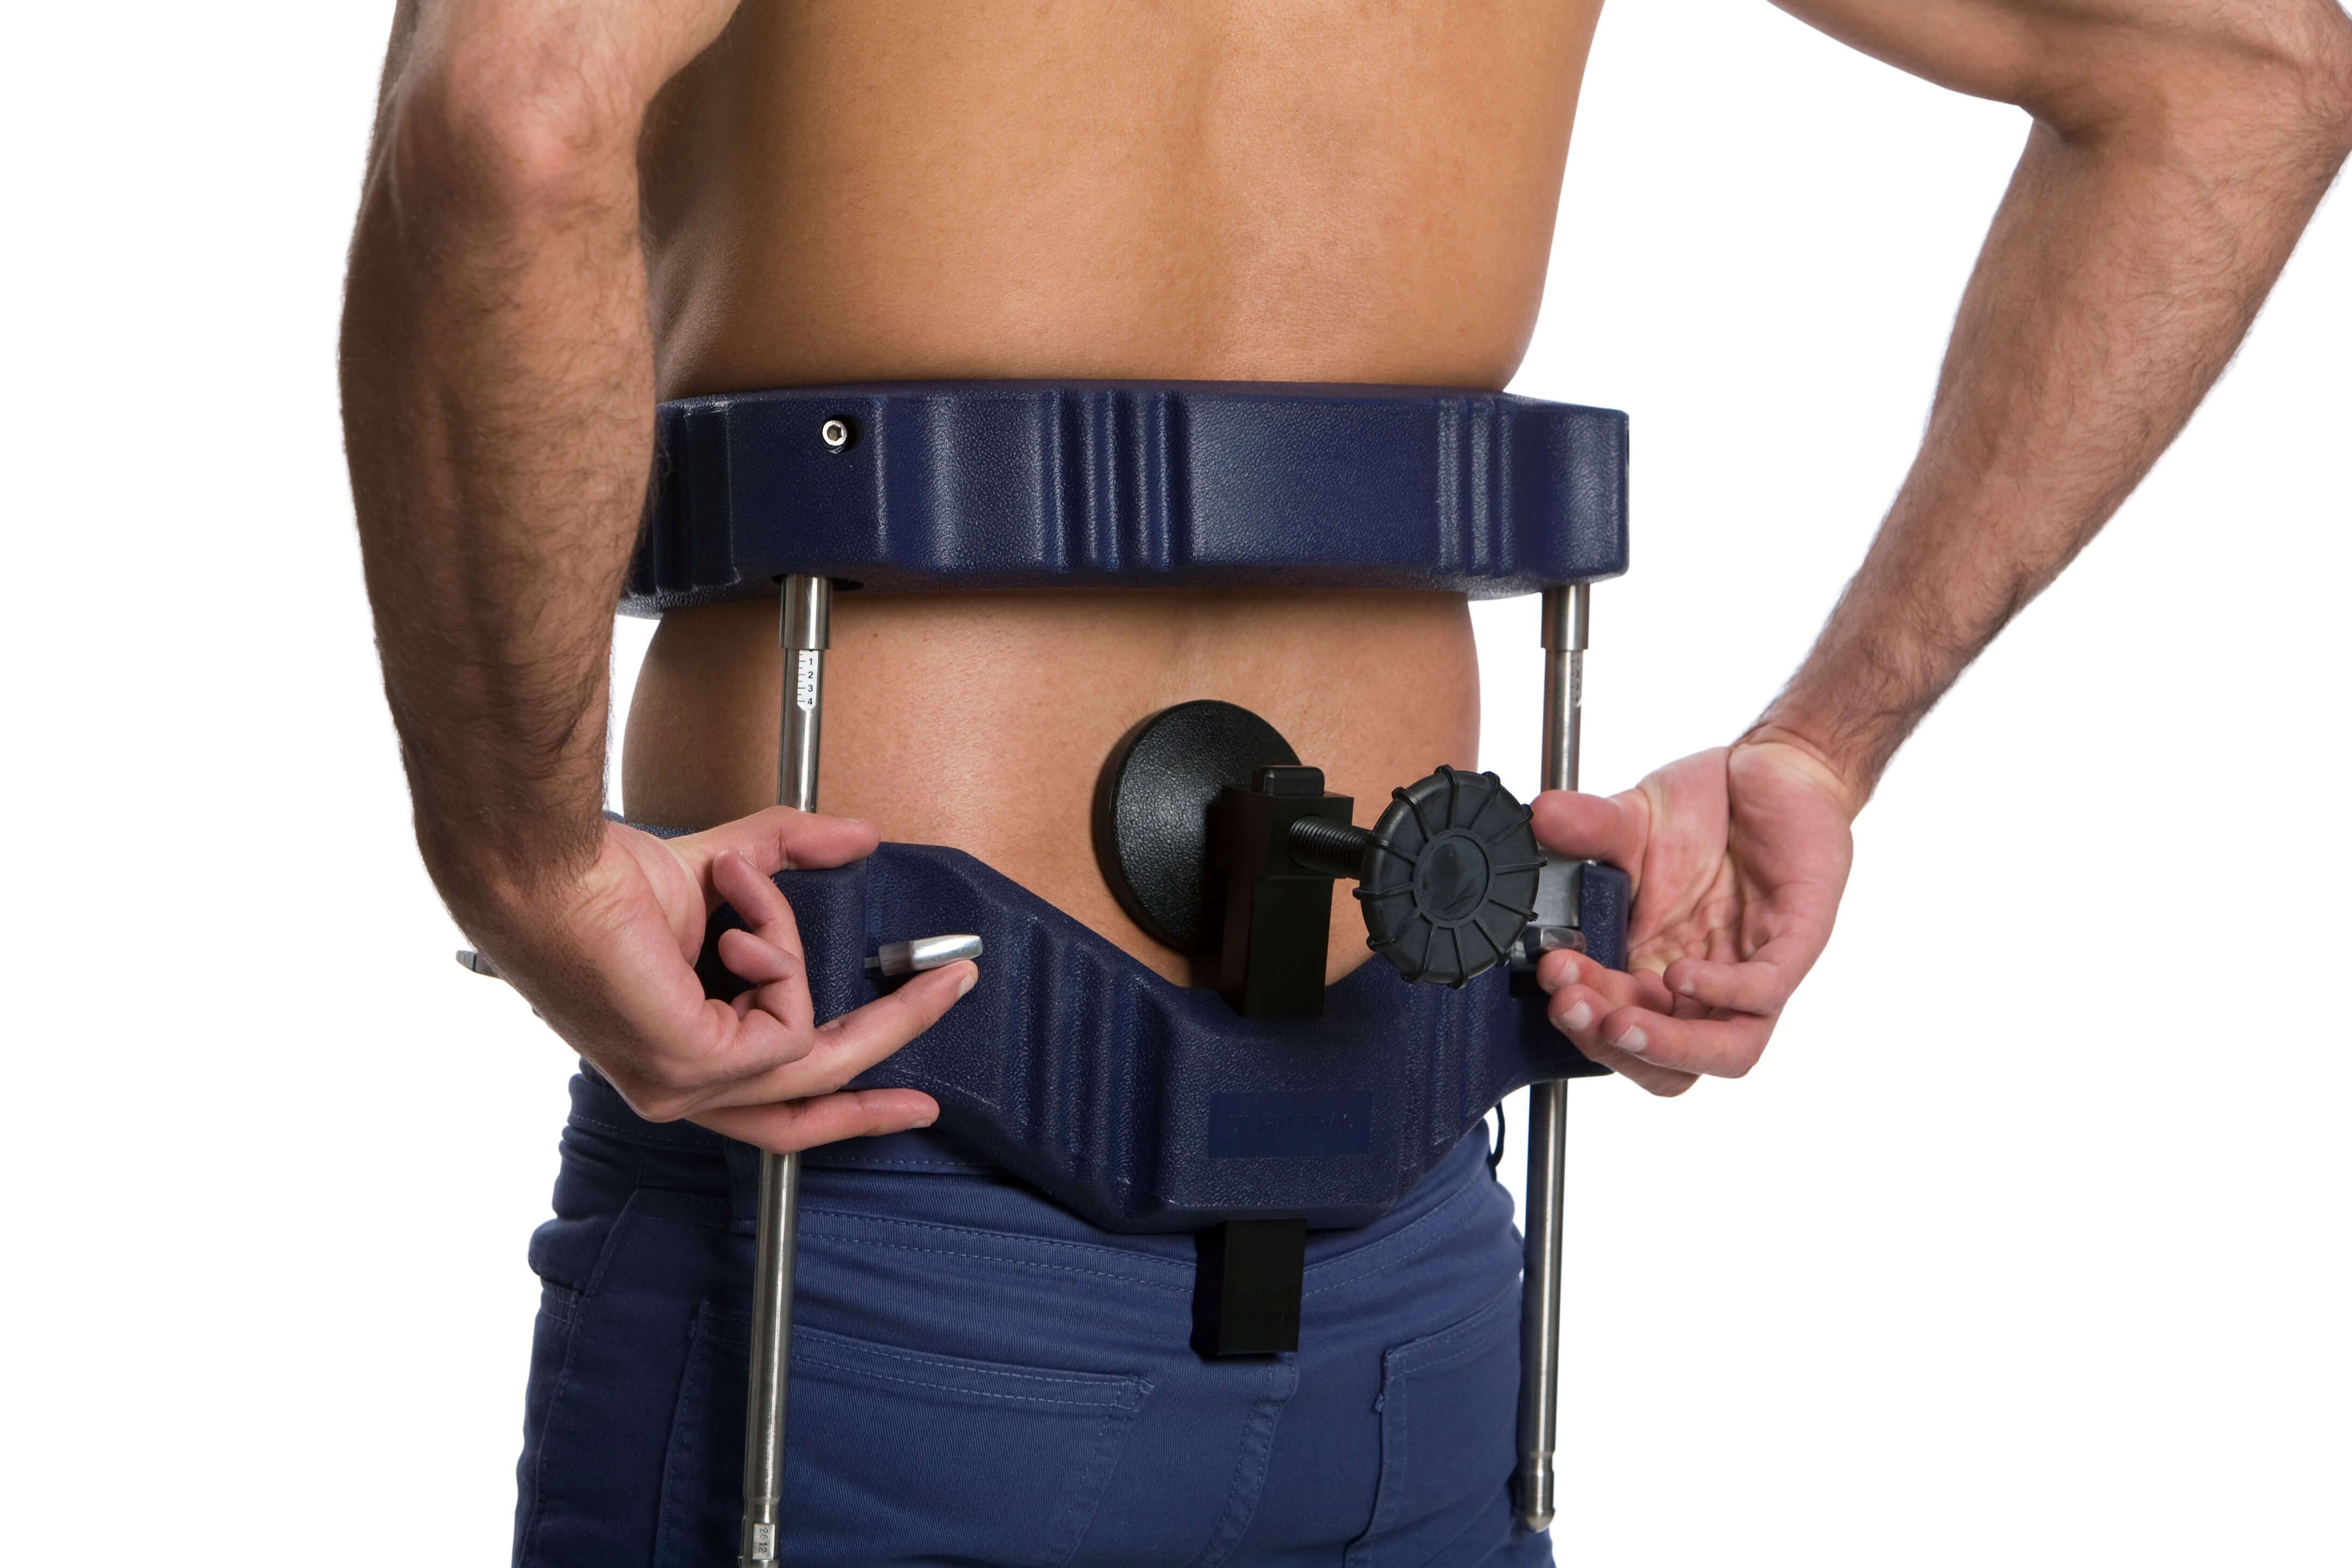 Patient self-administering 3D traction for lower back pain